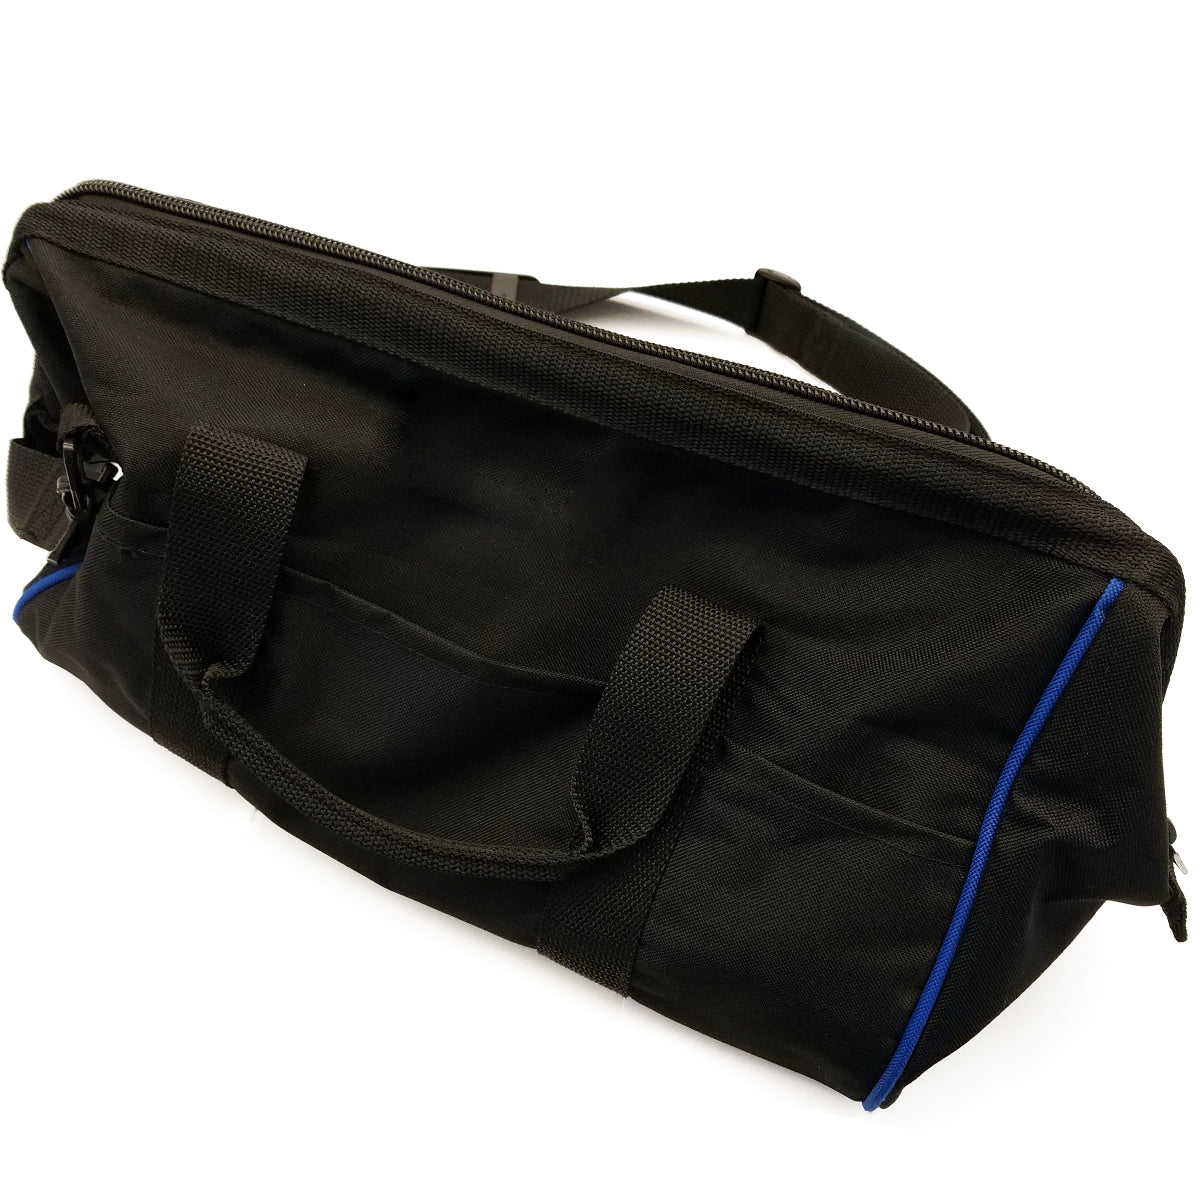 A156:  Heavy Duty Carrying Bag